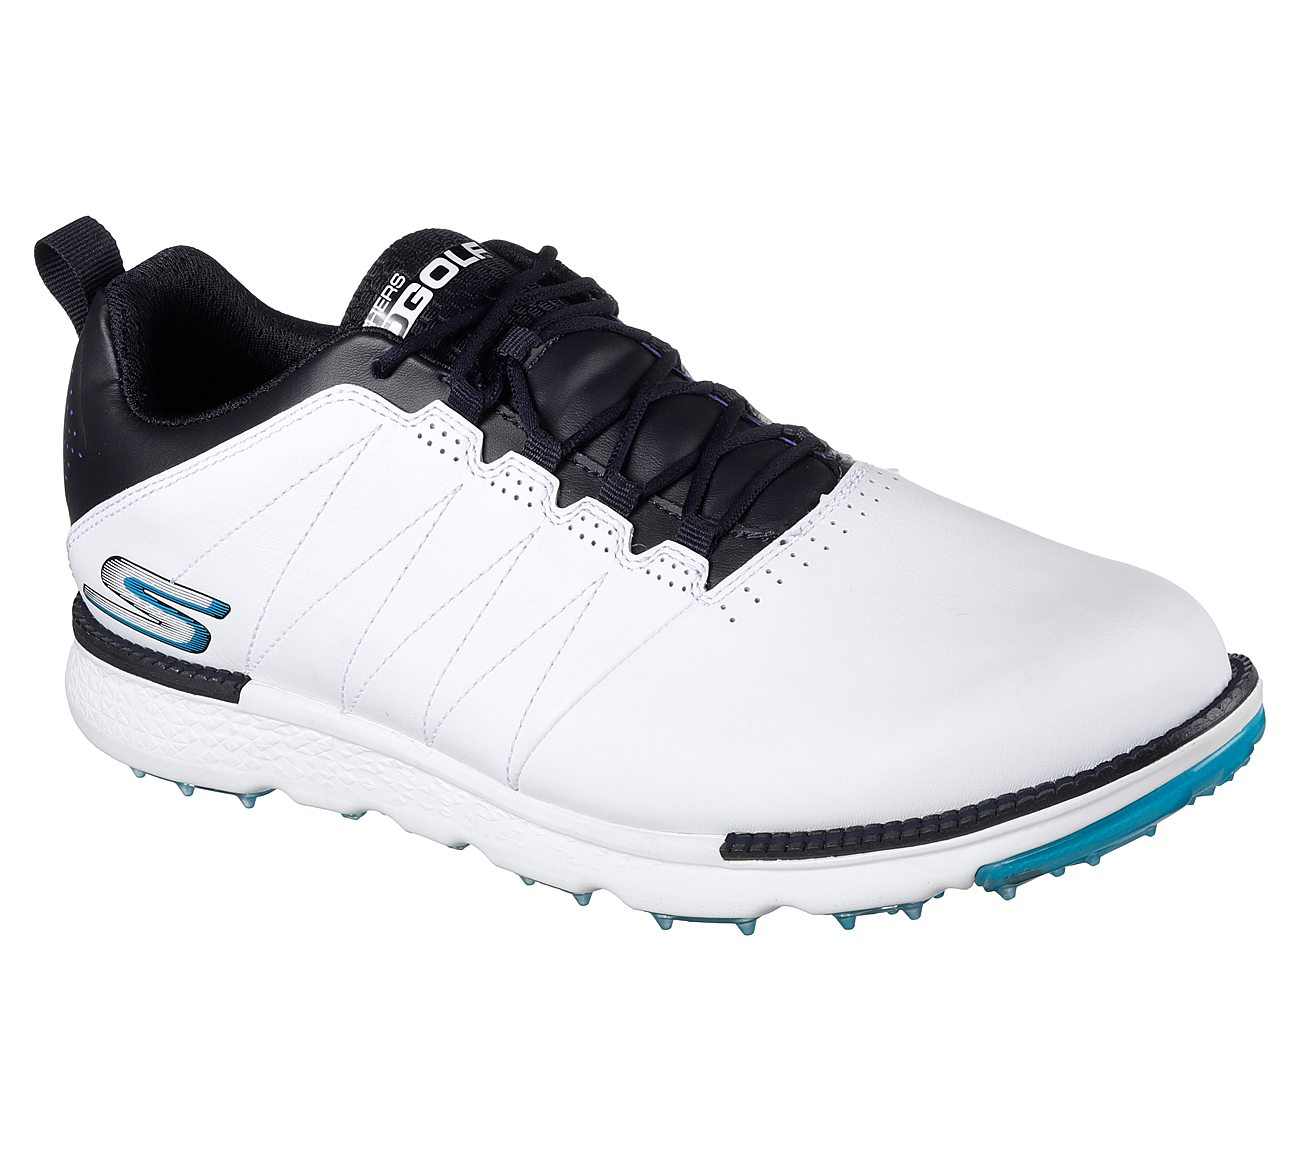 Skechers Go Golf Elite V3 Golf Shoe - White/Navy